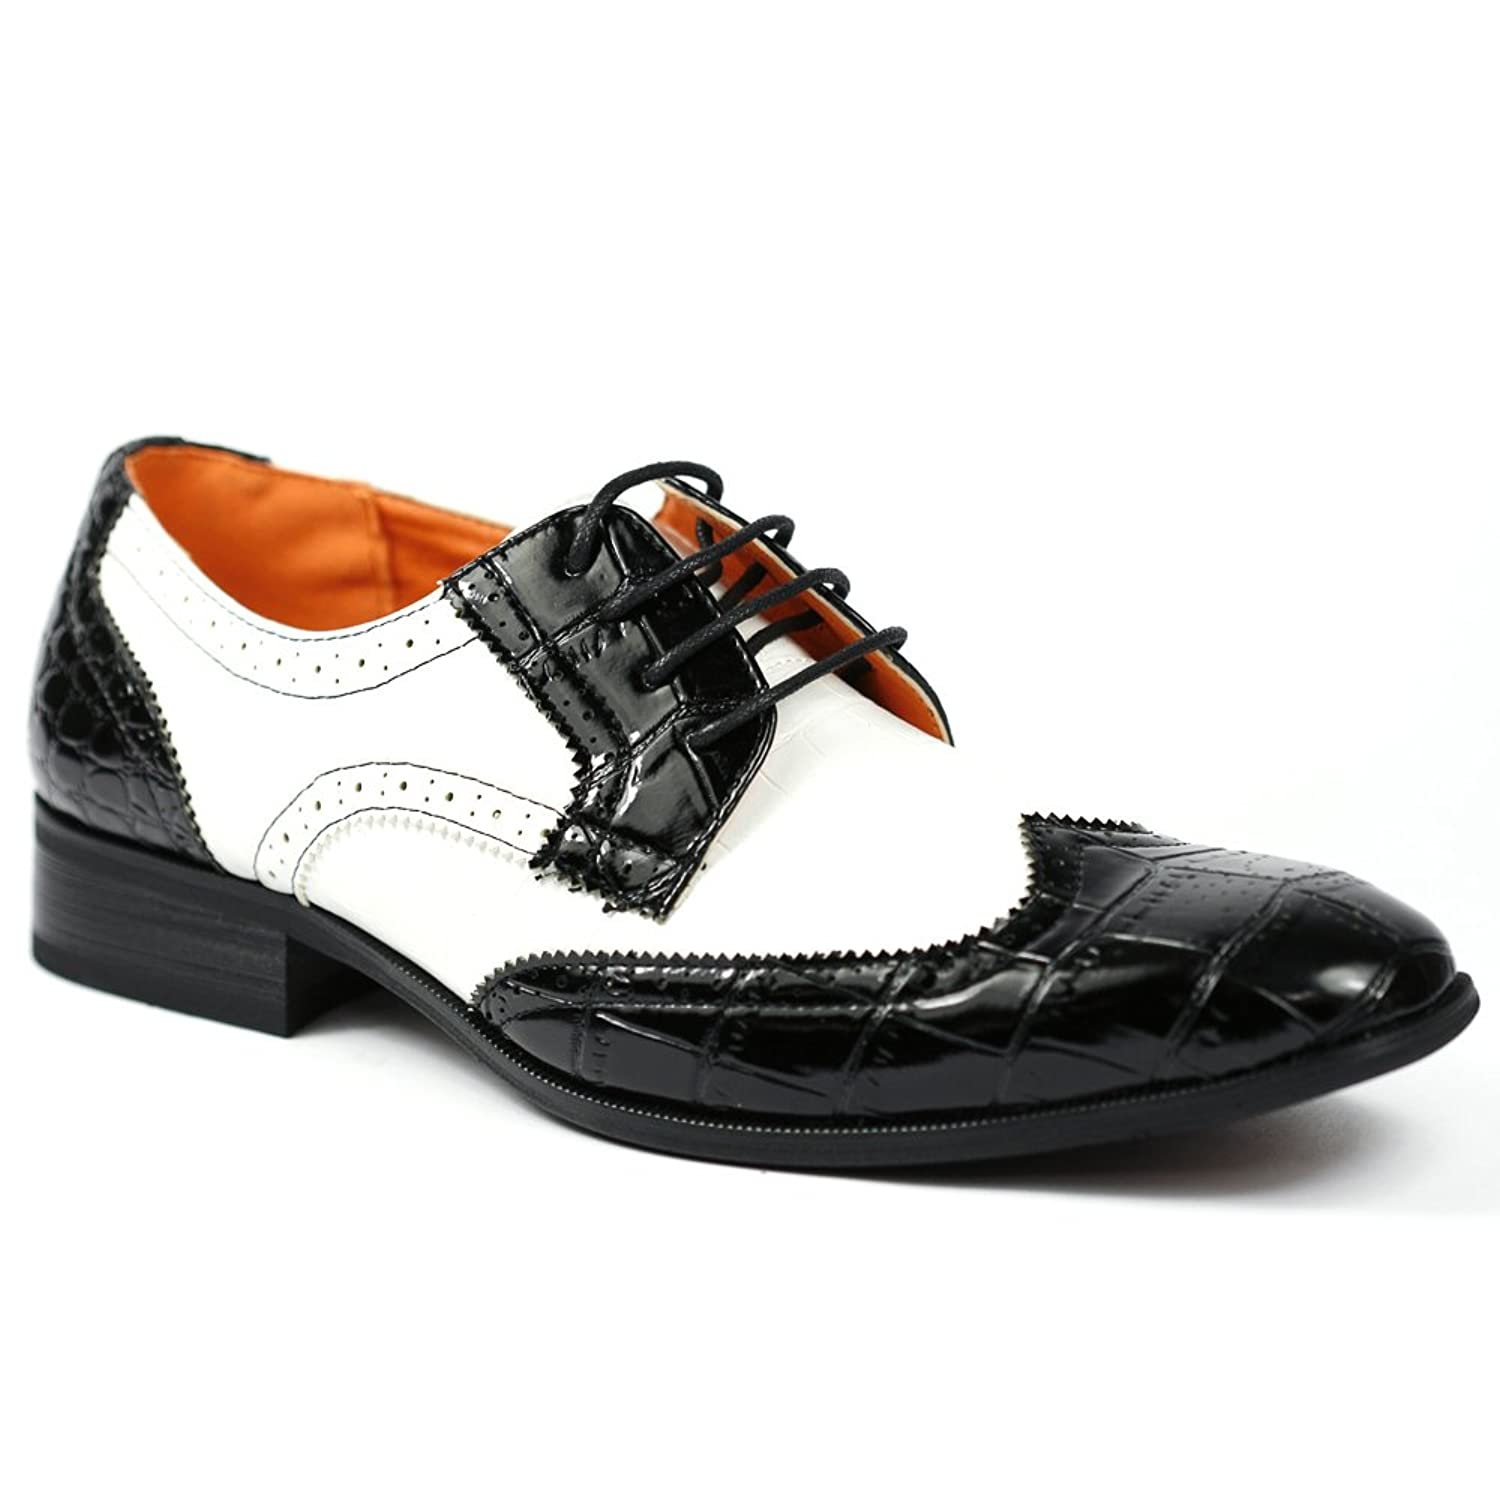 Mens Vintage Style Shoes| Retro Classic Shoes Mens Lace Up Wing Tip Proforated Oxford Dress Shoes w/ Leather Lining $39.99 AT vintagedancer.com